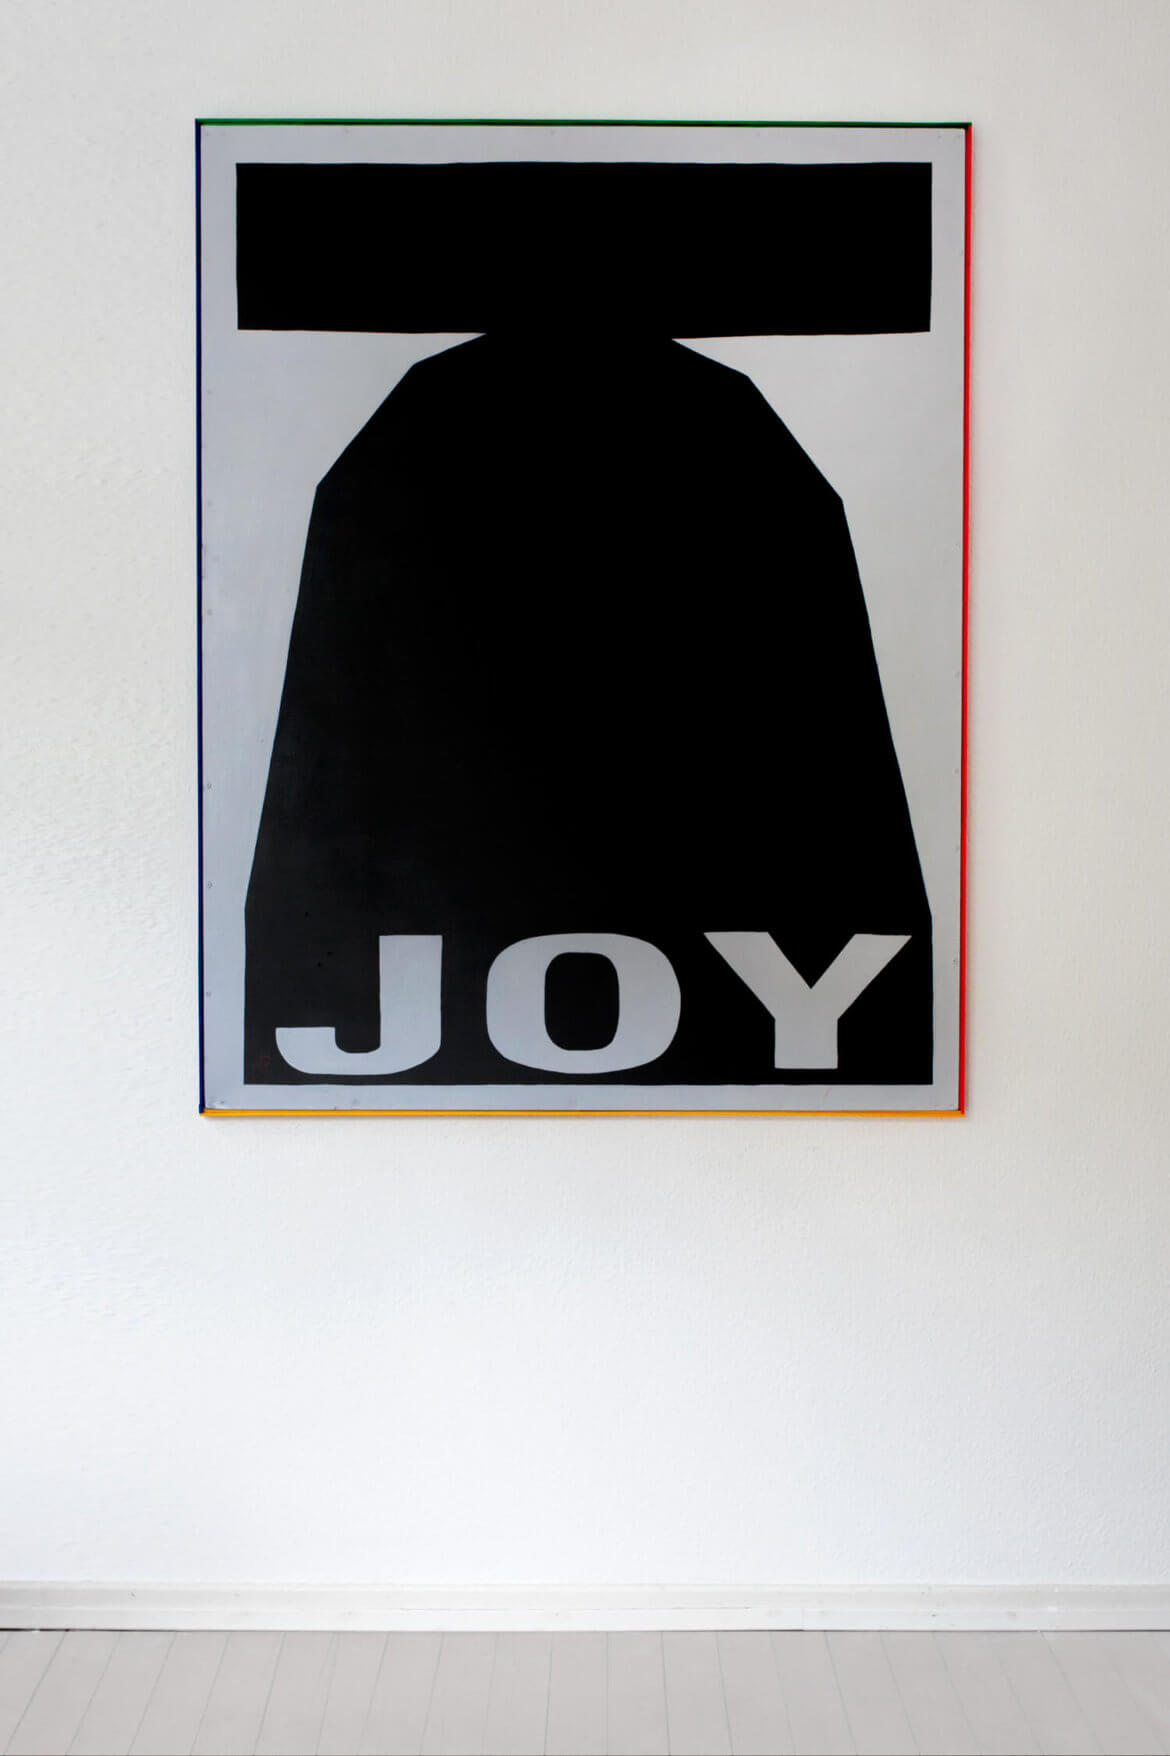 Daniel_Angermann_Joy_Gallery_view Joy